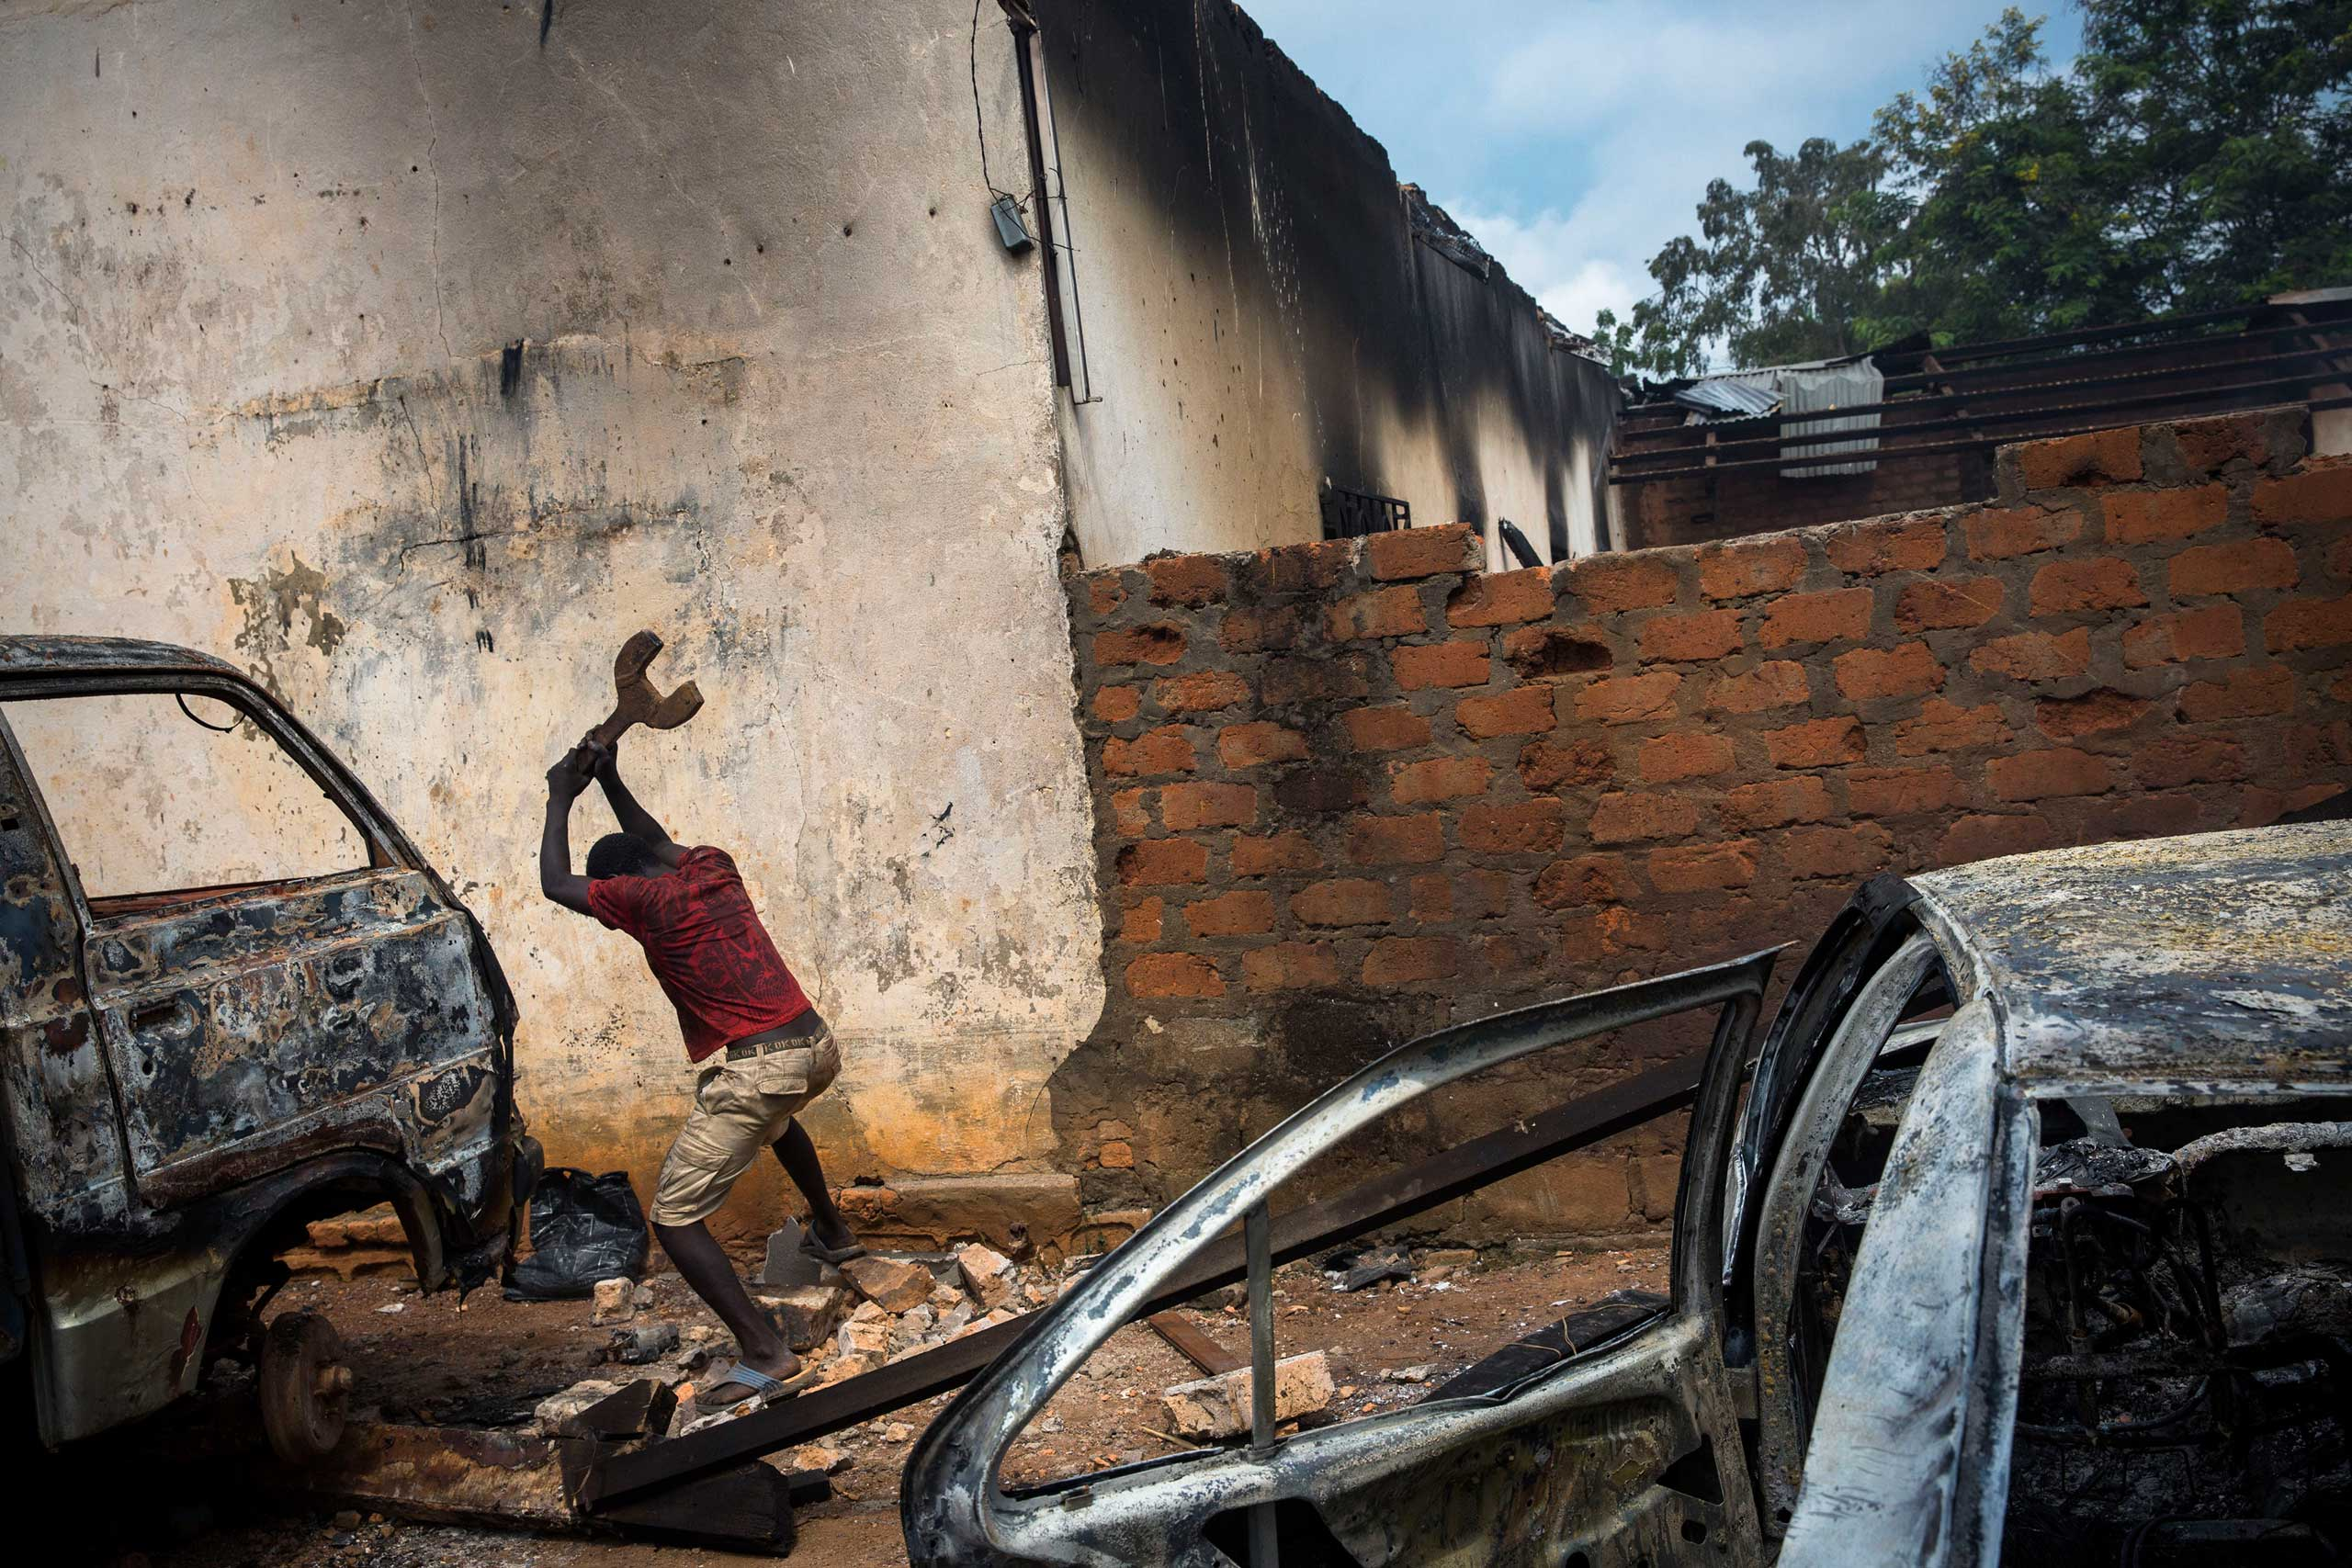 Dec. 10, 2013. A Christian man destroys burnt out cars in rage next to a looted mosque in Bangui, Central African Republic. From  Witness to Collapse: William Daniels in Central African Republic